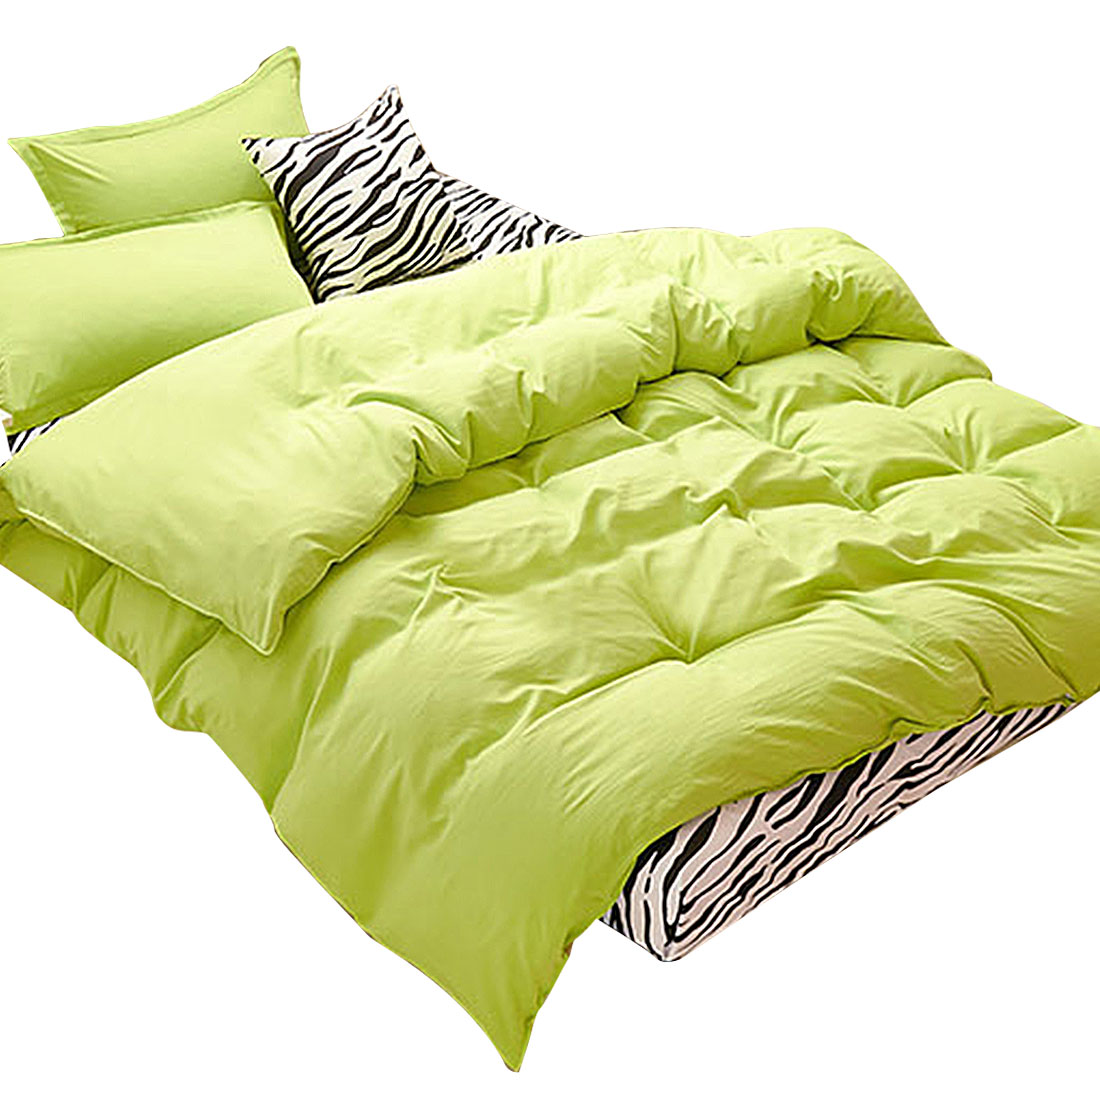 Bedroom Duvet Quilt Cover Pillowcase Bedding Set Bedclothes Green Super King Size